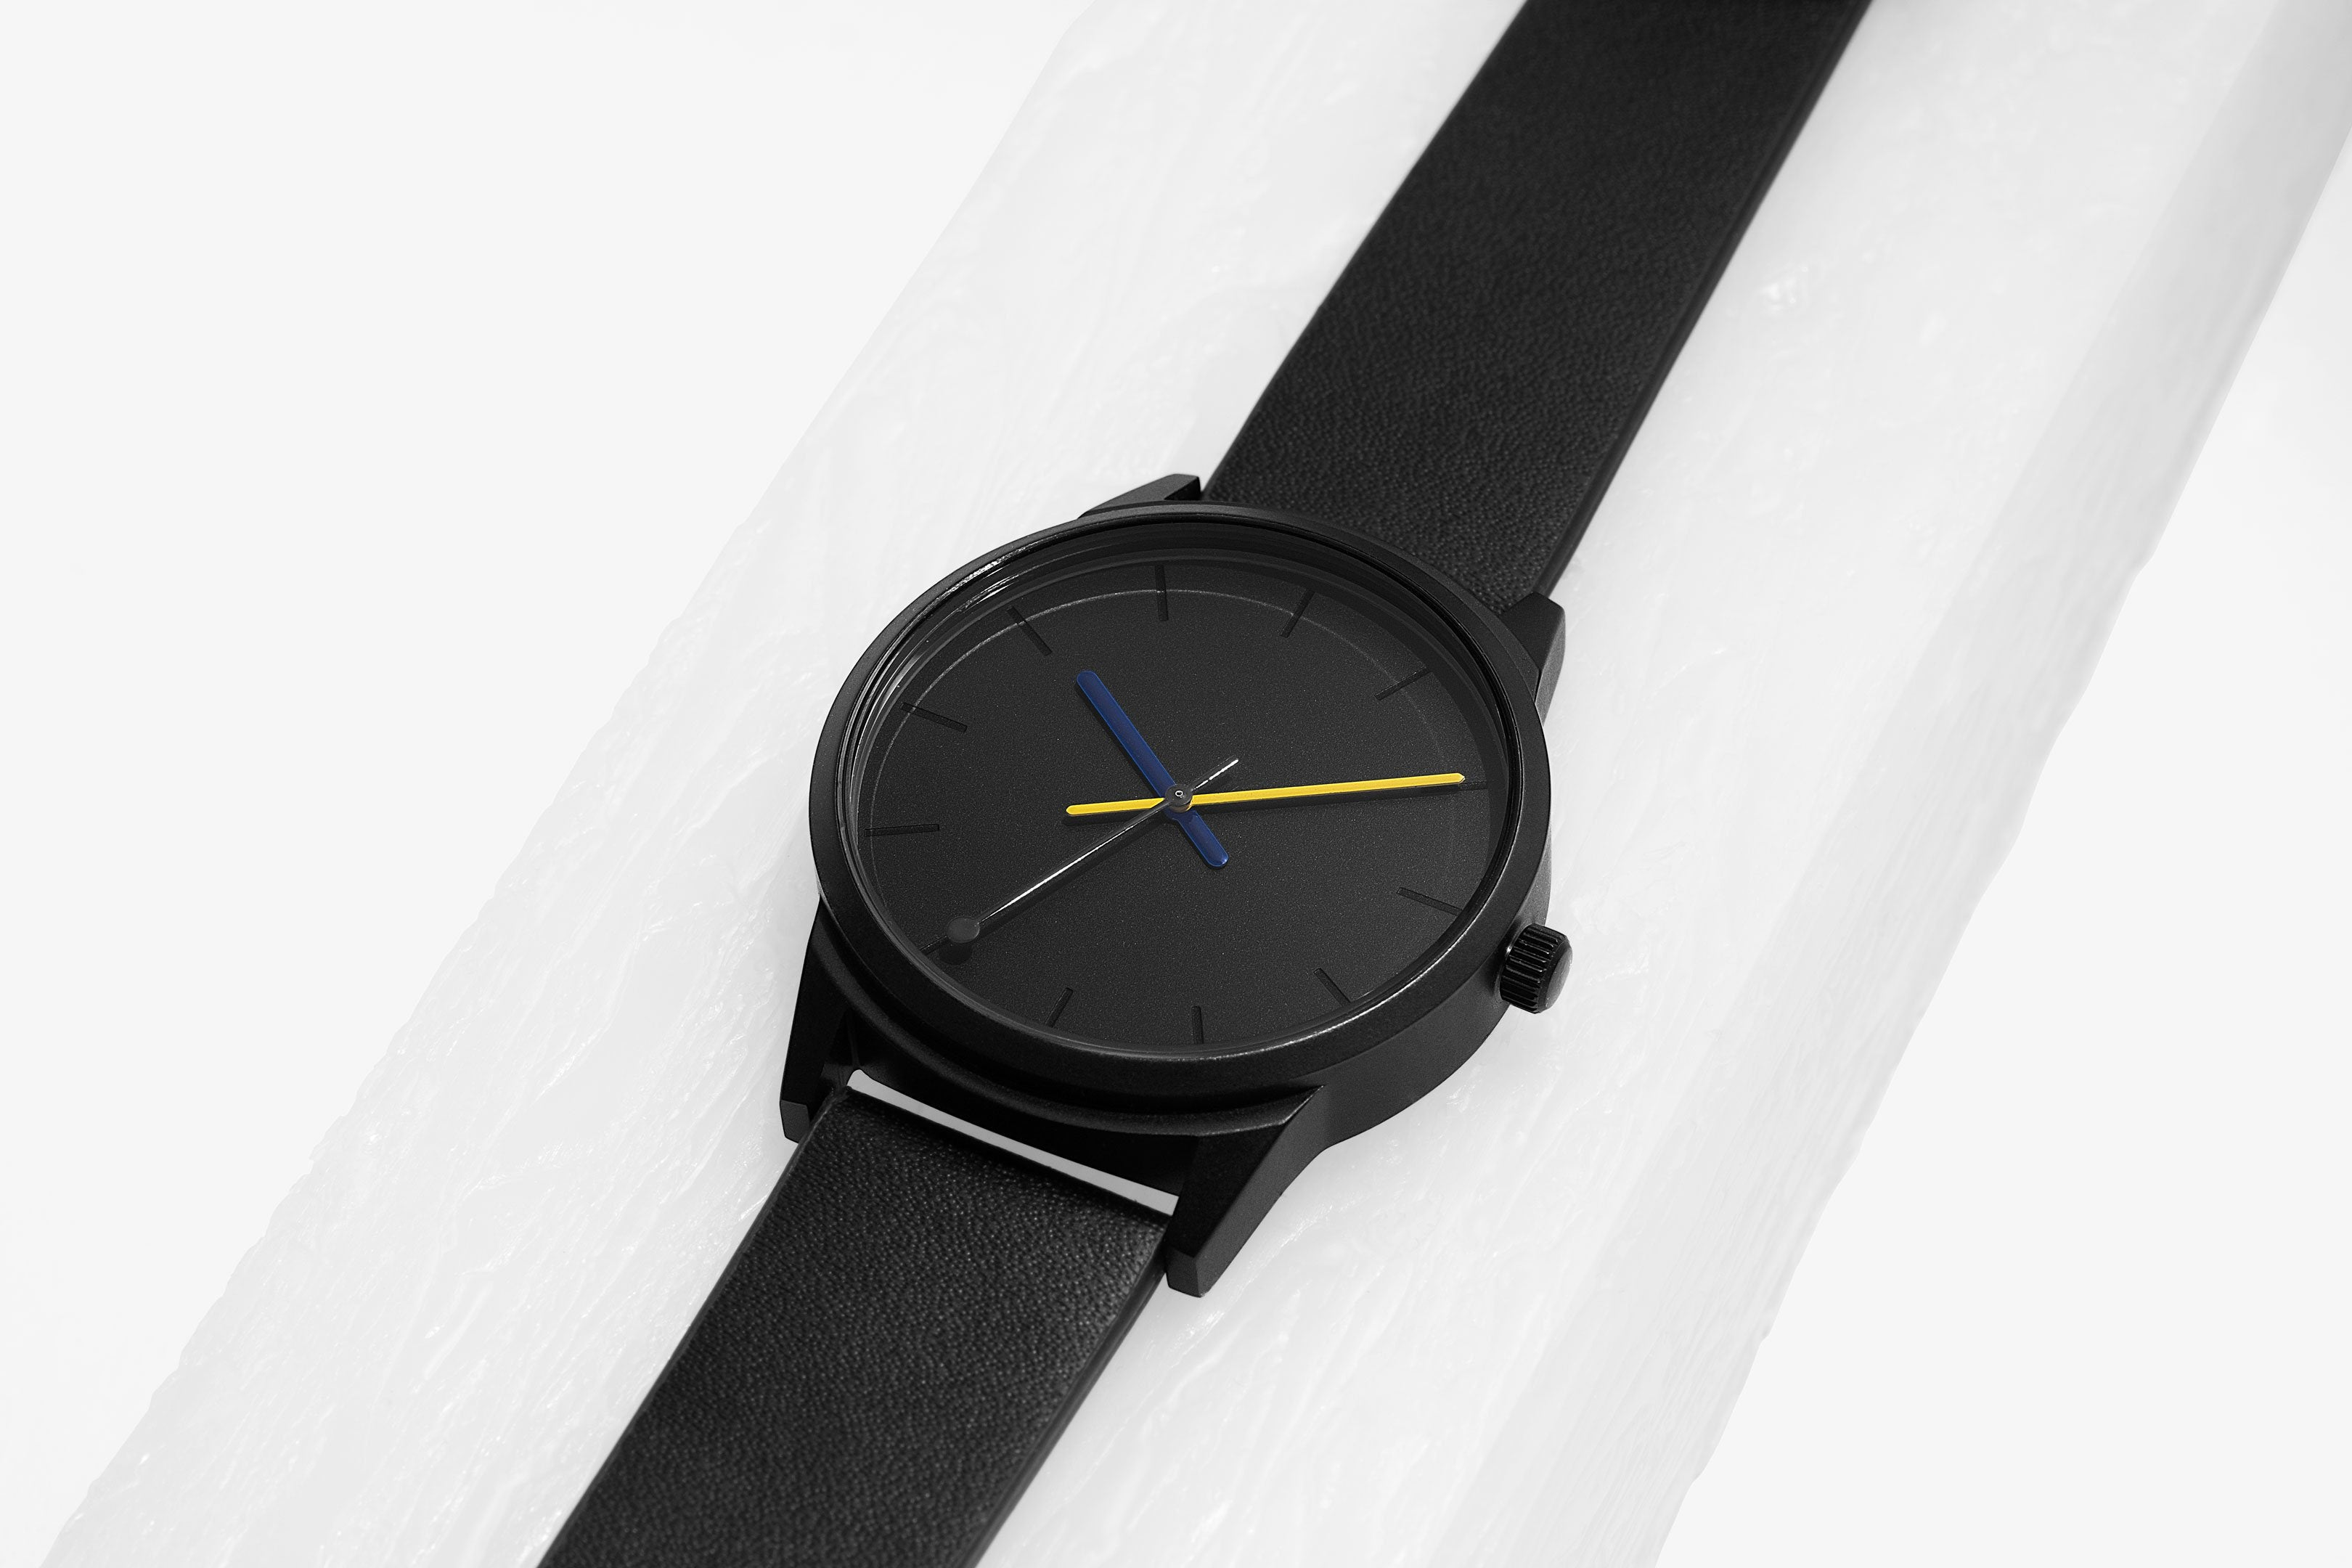 //cdn.shopify.com/s/files/1/0879/6650/products/breda-poketo-5021a-spectra-black-leather-band-collaboration-watch-front-holiday-2018-1_1024x1024.jpg?v=1542823188